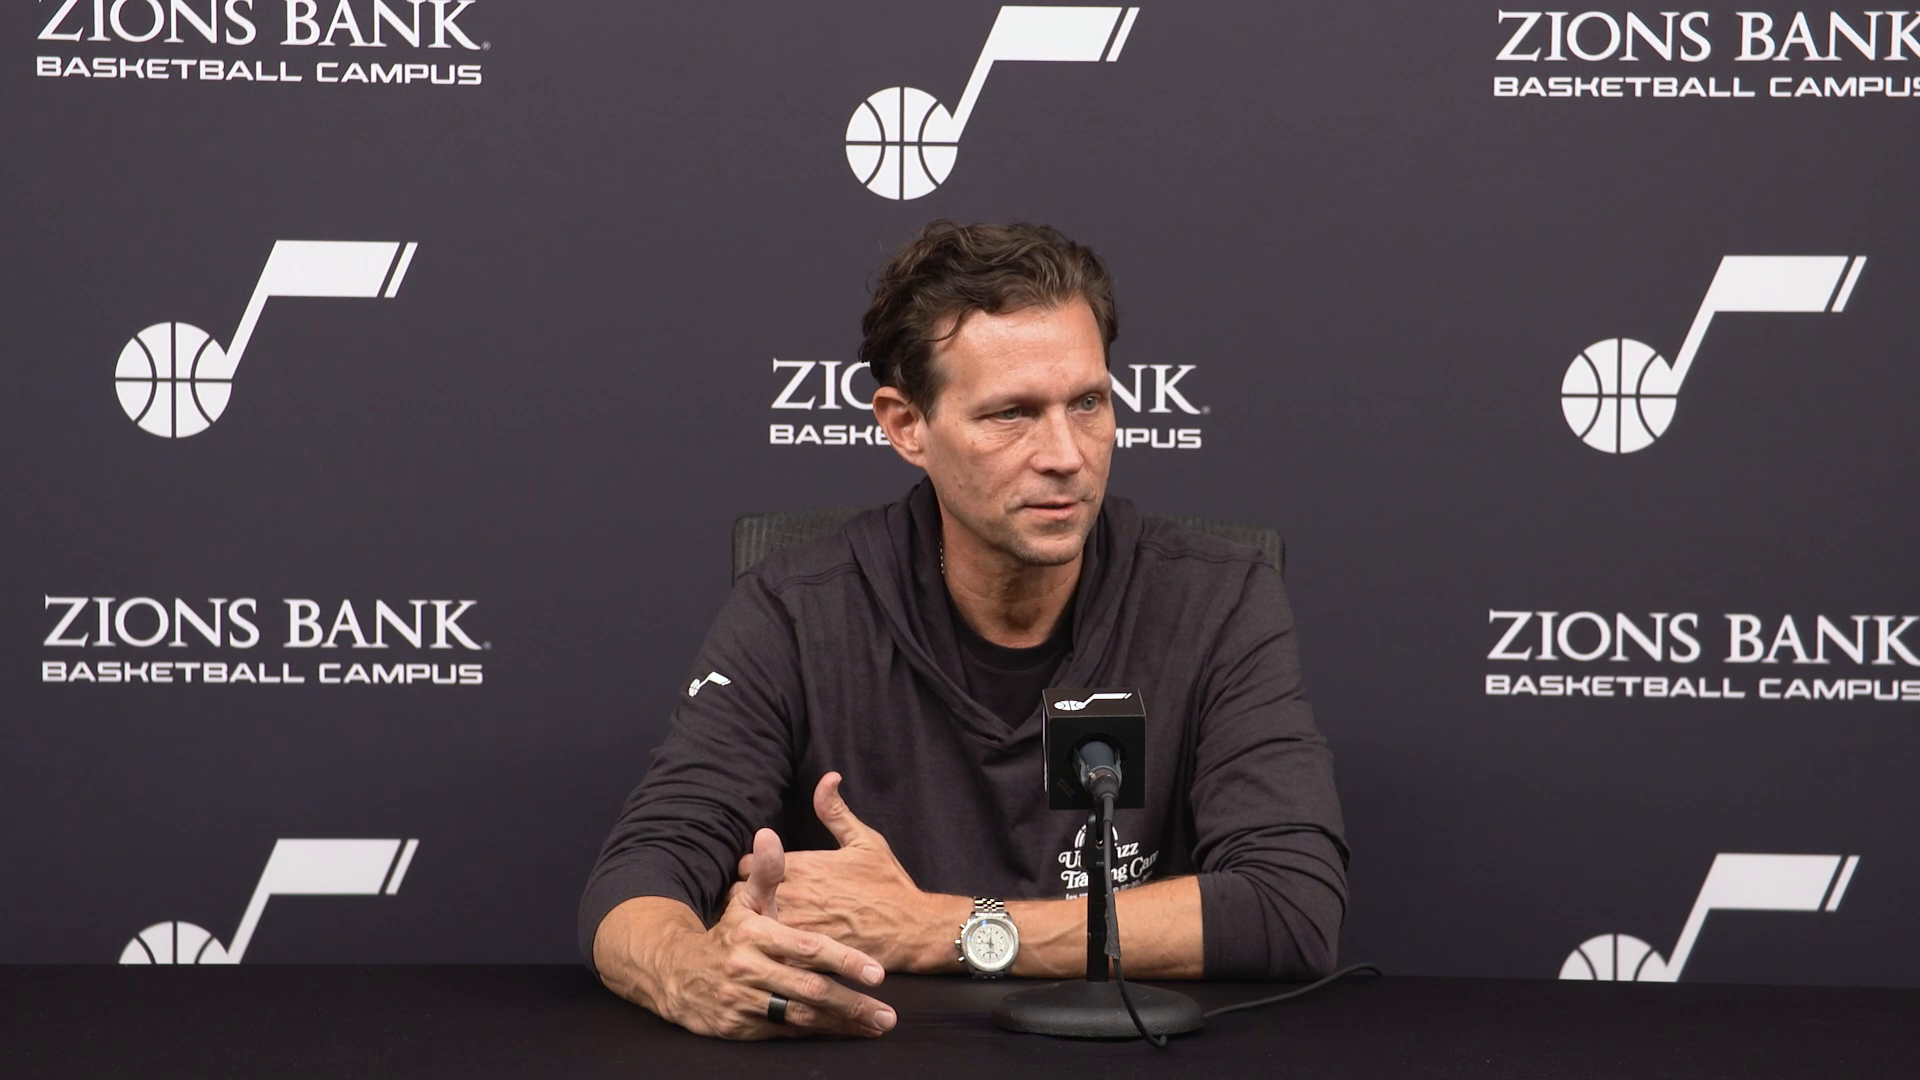 Practice 10.19—Coach Quin Snyder says 'normal' is an outdated term